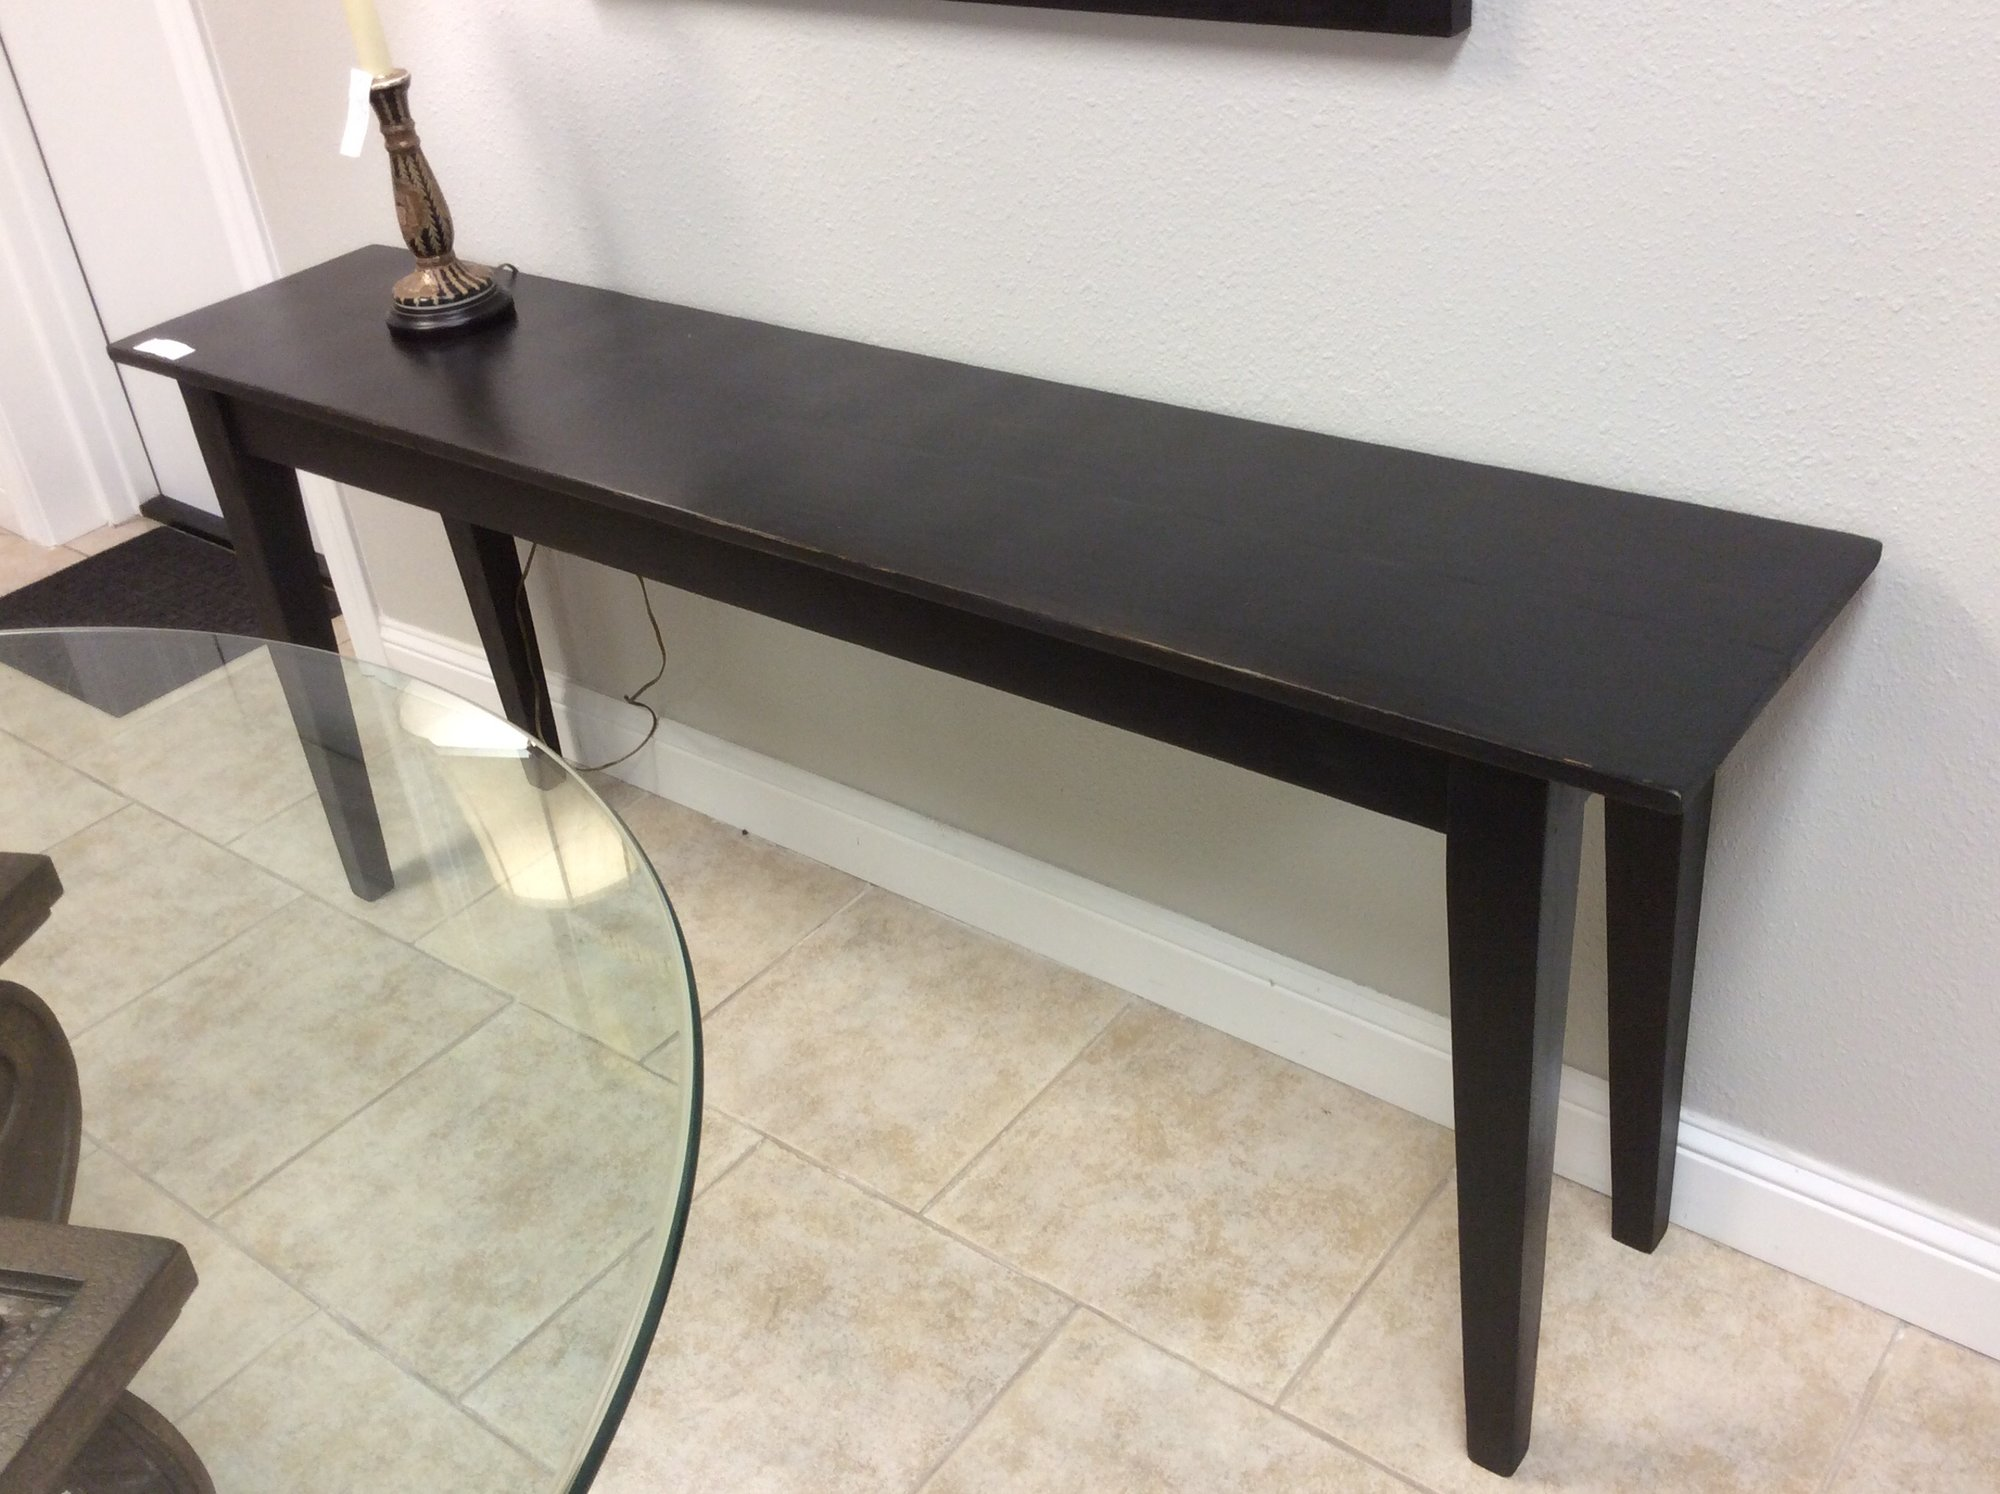 This CUSTOM beauty is solid wood and has a painted matte black finish. It is both sleek and simple. We actually have FOUR of these tables available for sale. The remaining ones are all different shades of matte gray.